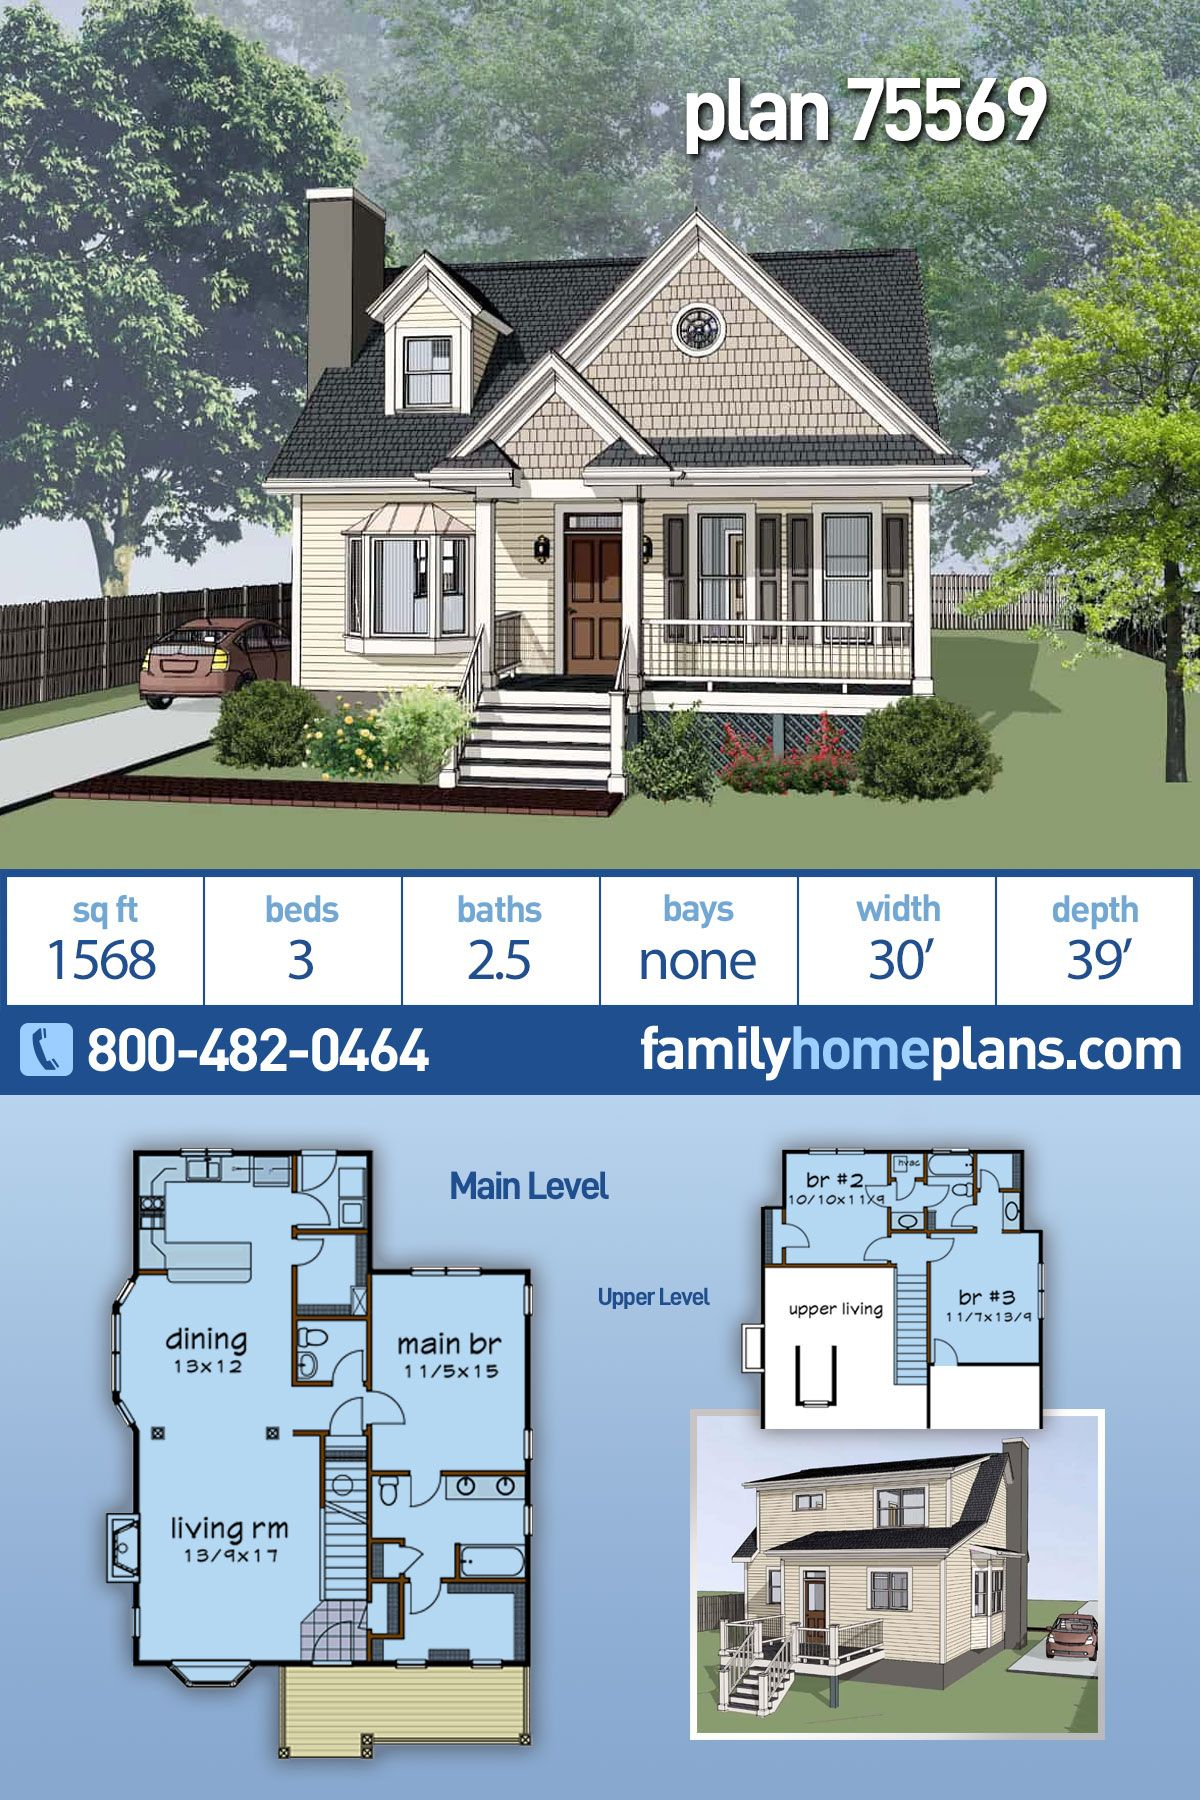 cottage style house plan 75569 with 3 bed 3 bath in 2020